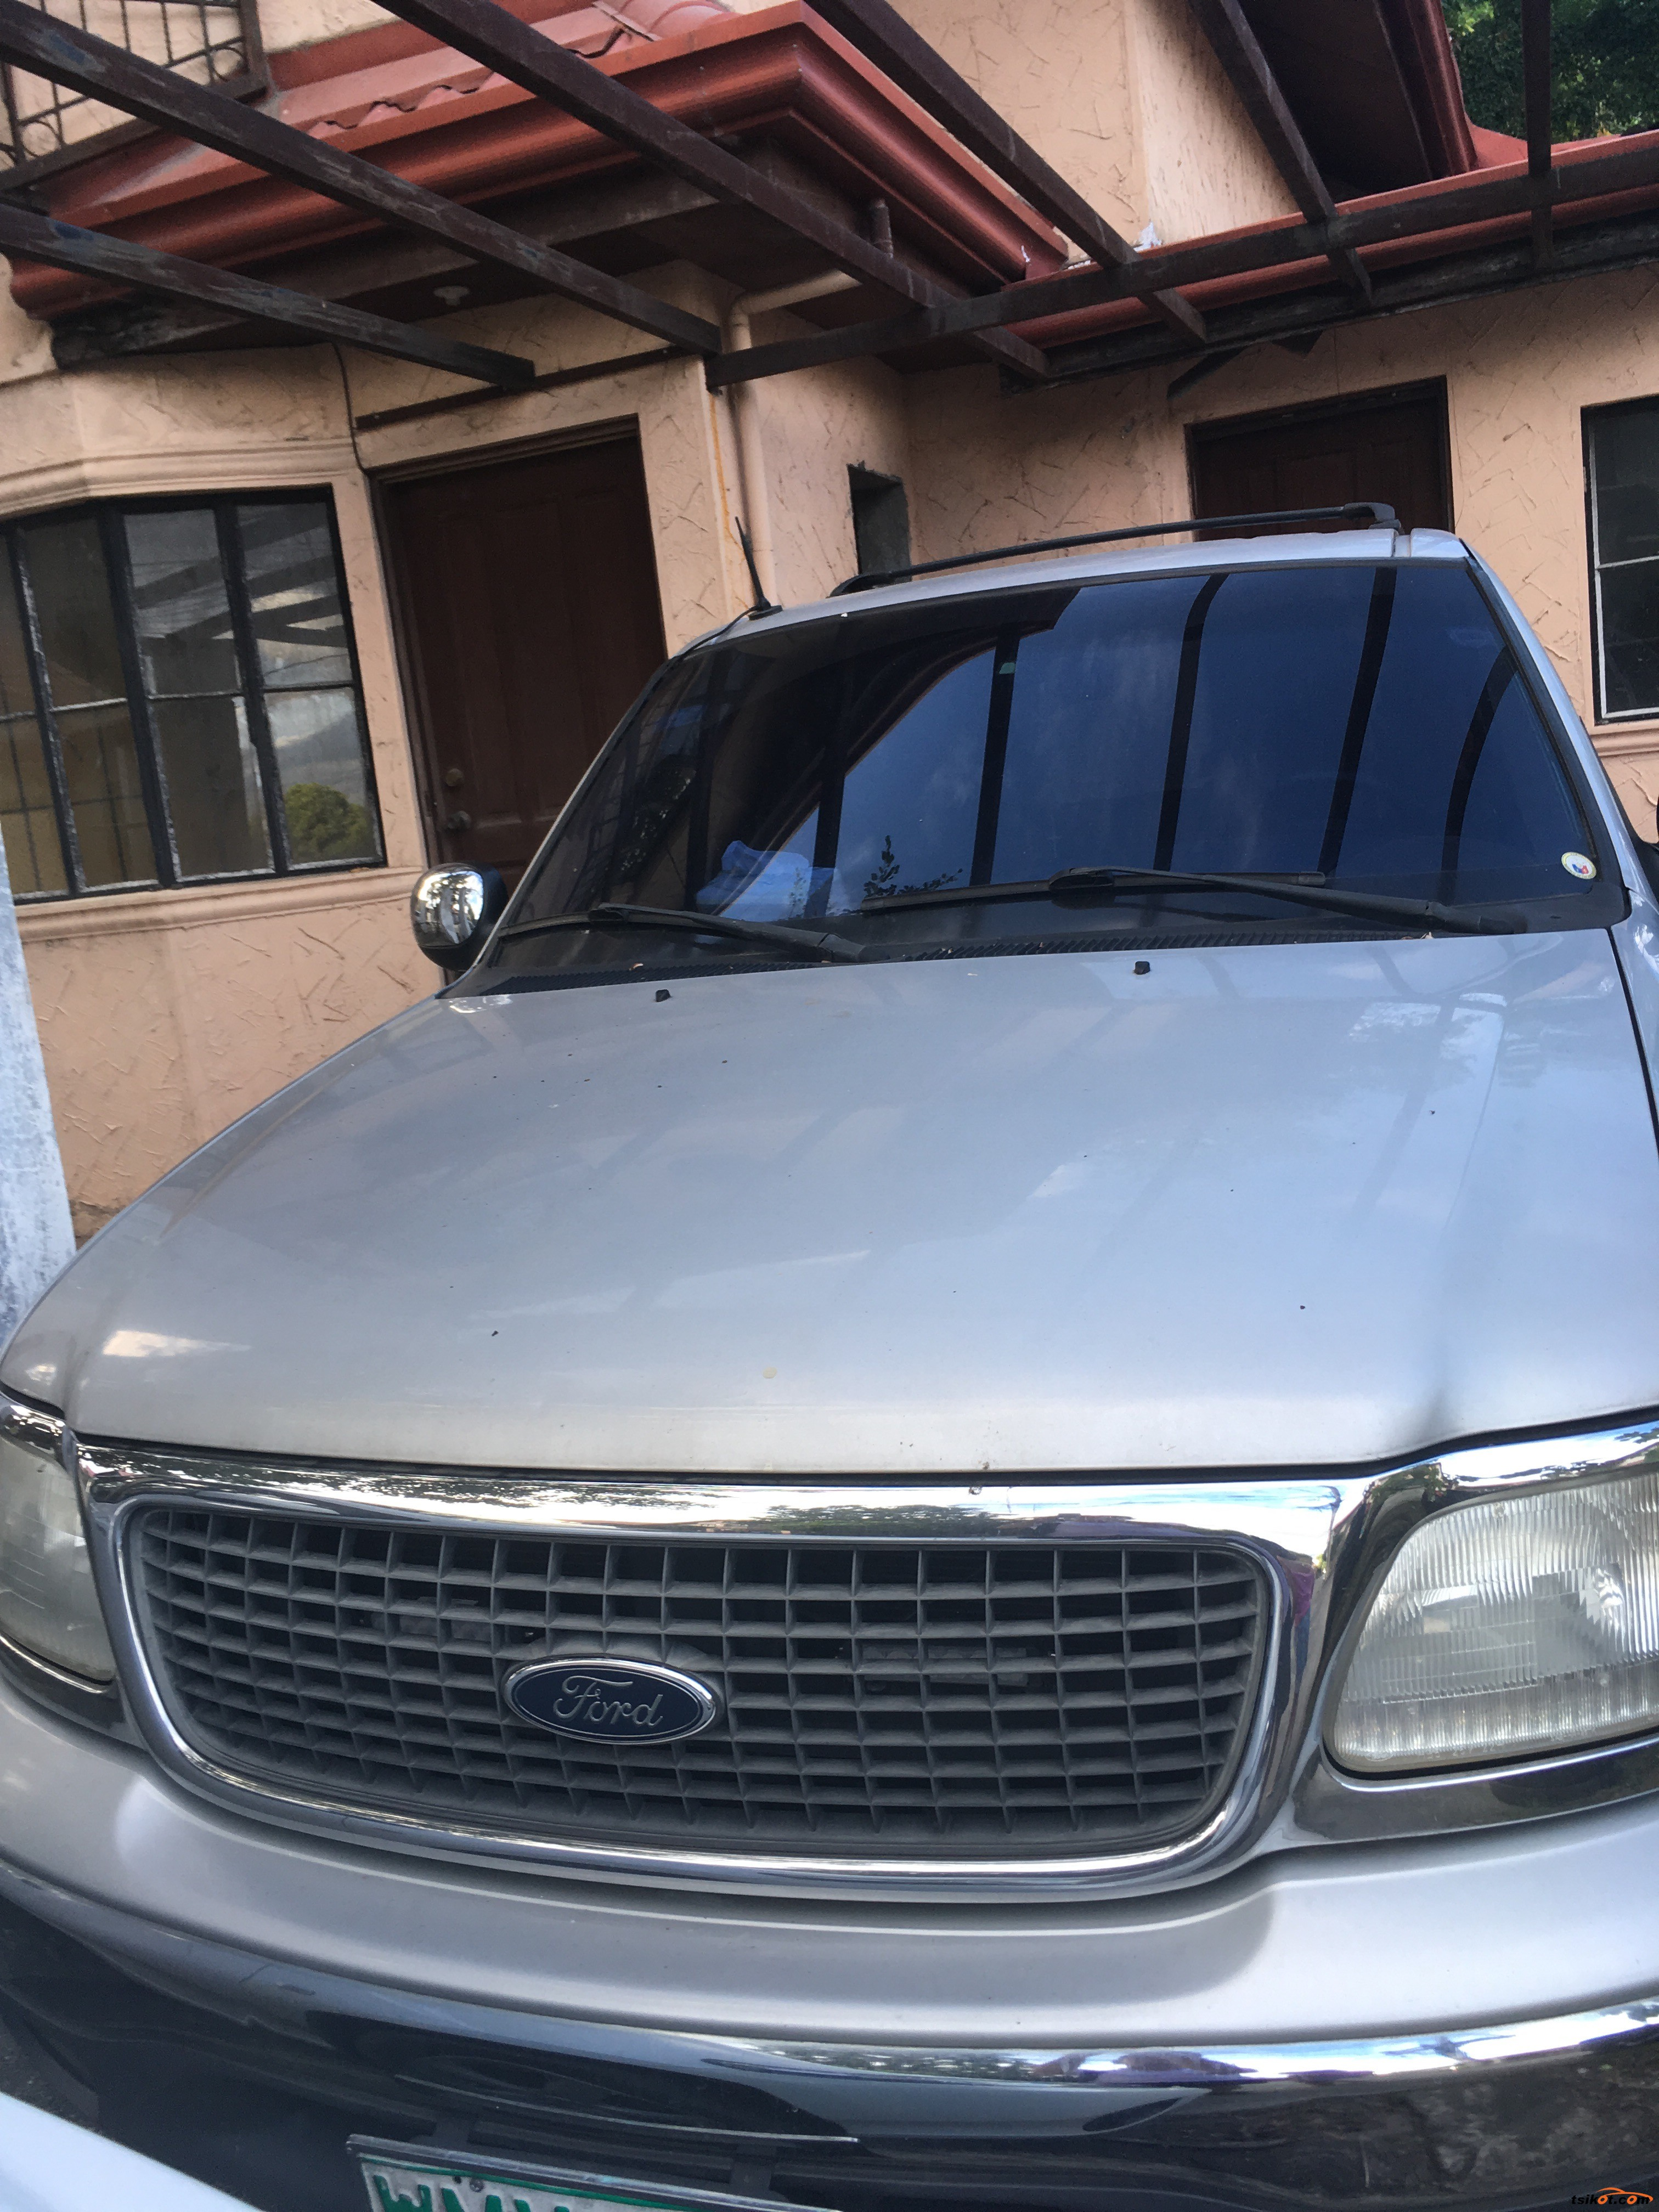 Ford Expedition 2000 - 1